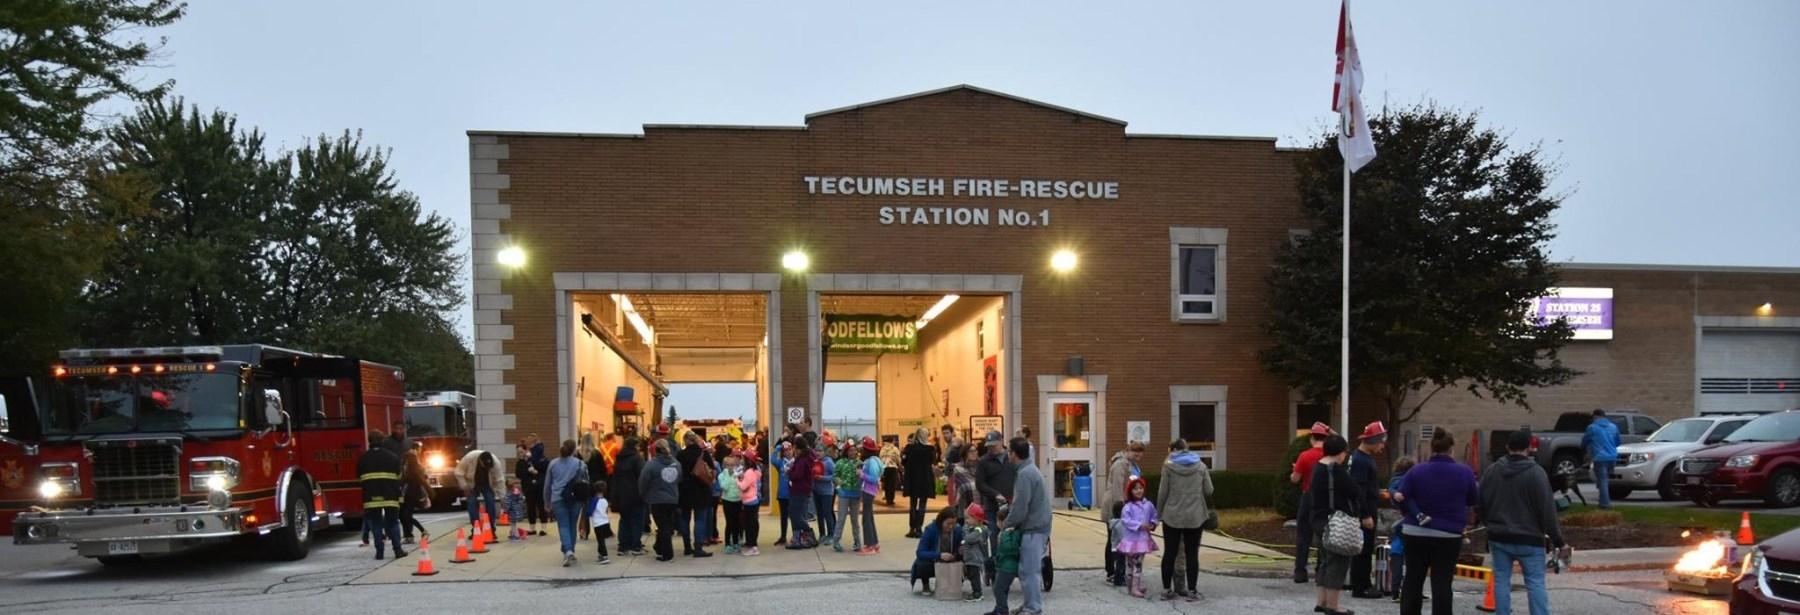 Fire Prevention Open House at Station 1 a large crowd in front of building